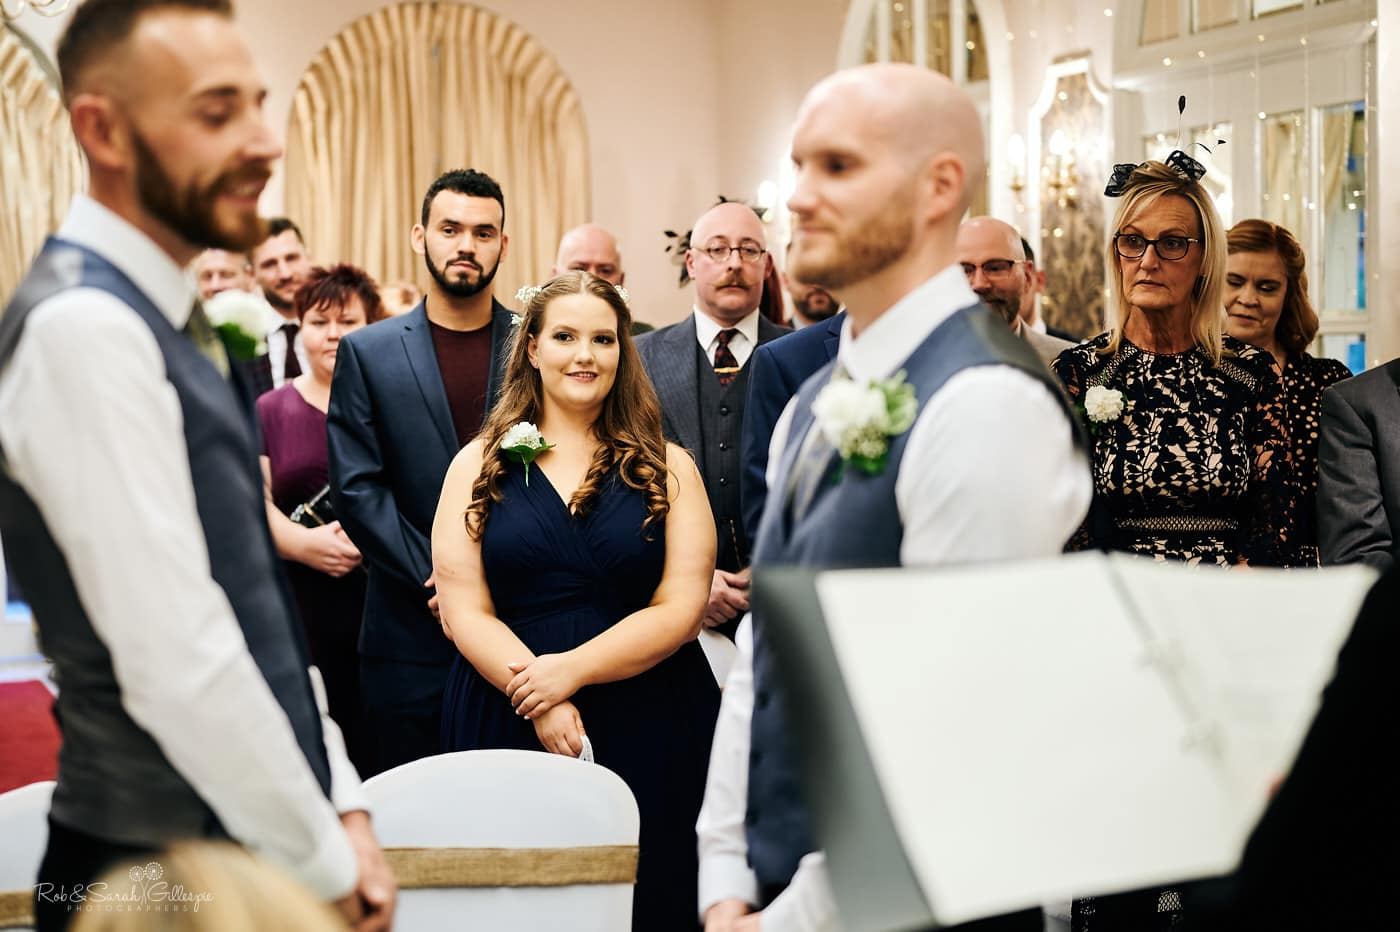 Wedding guests watch as two grooms get married